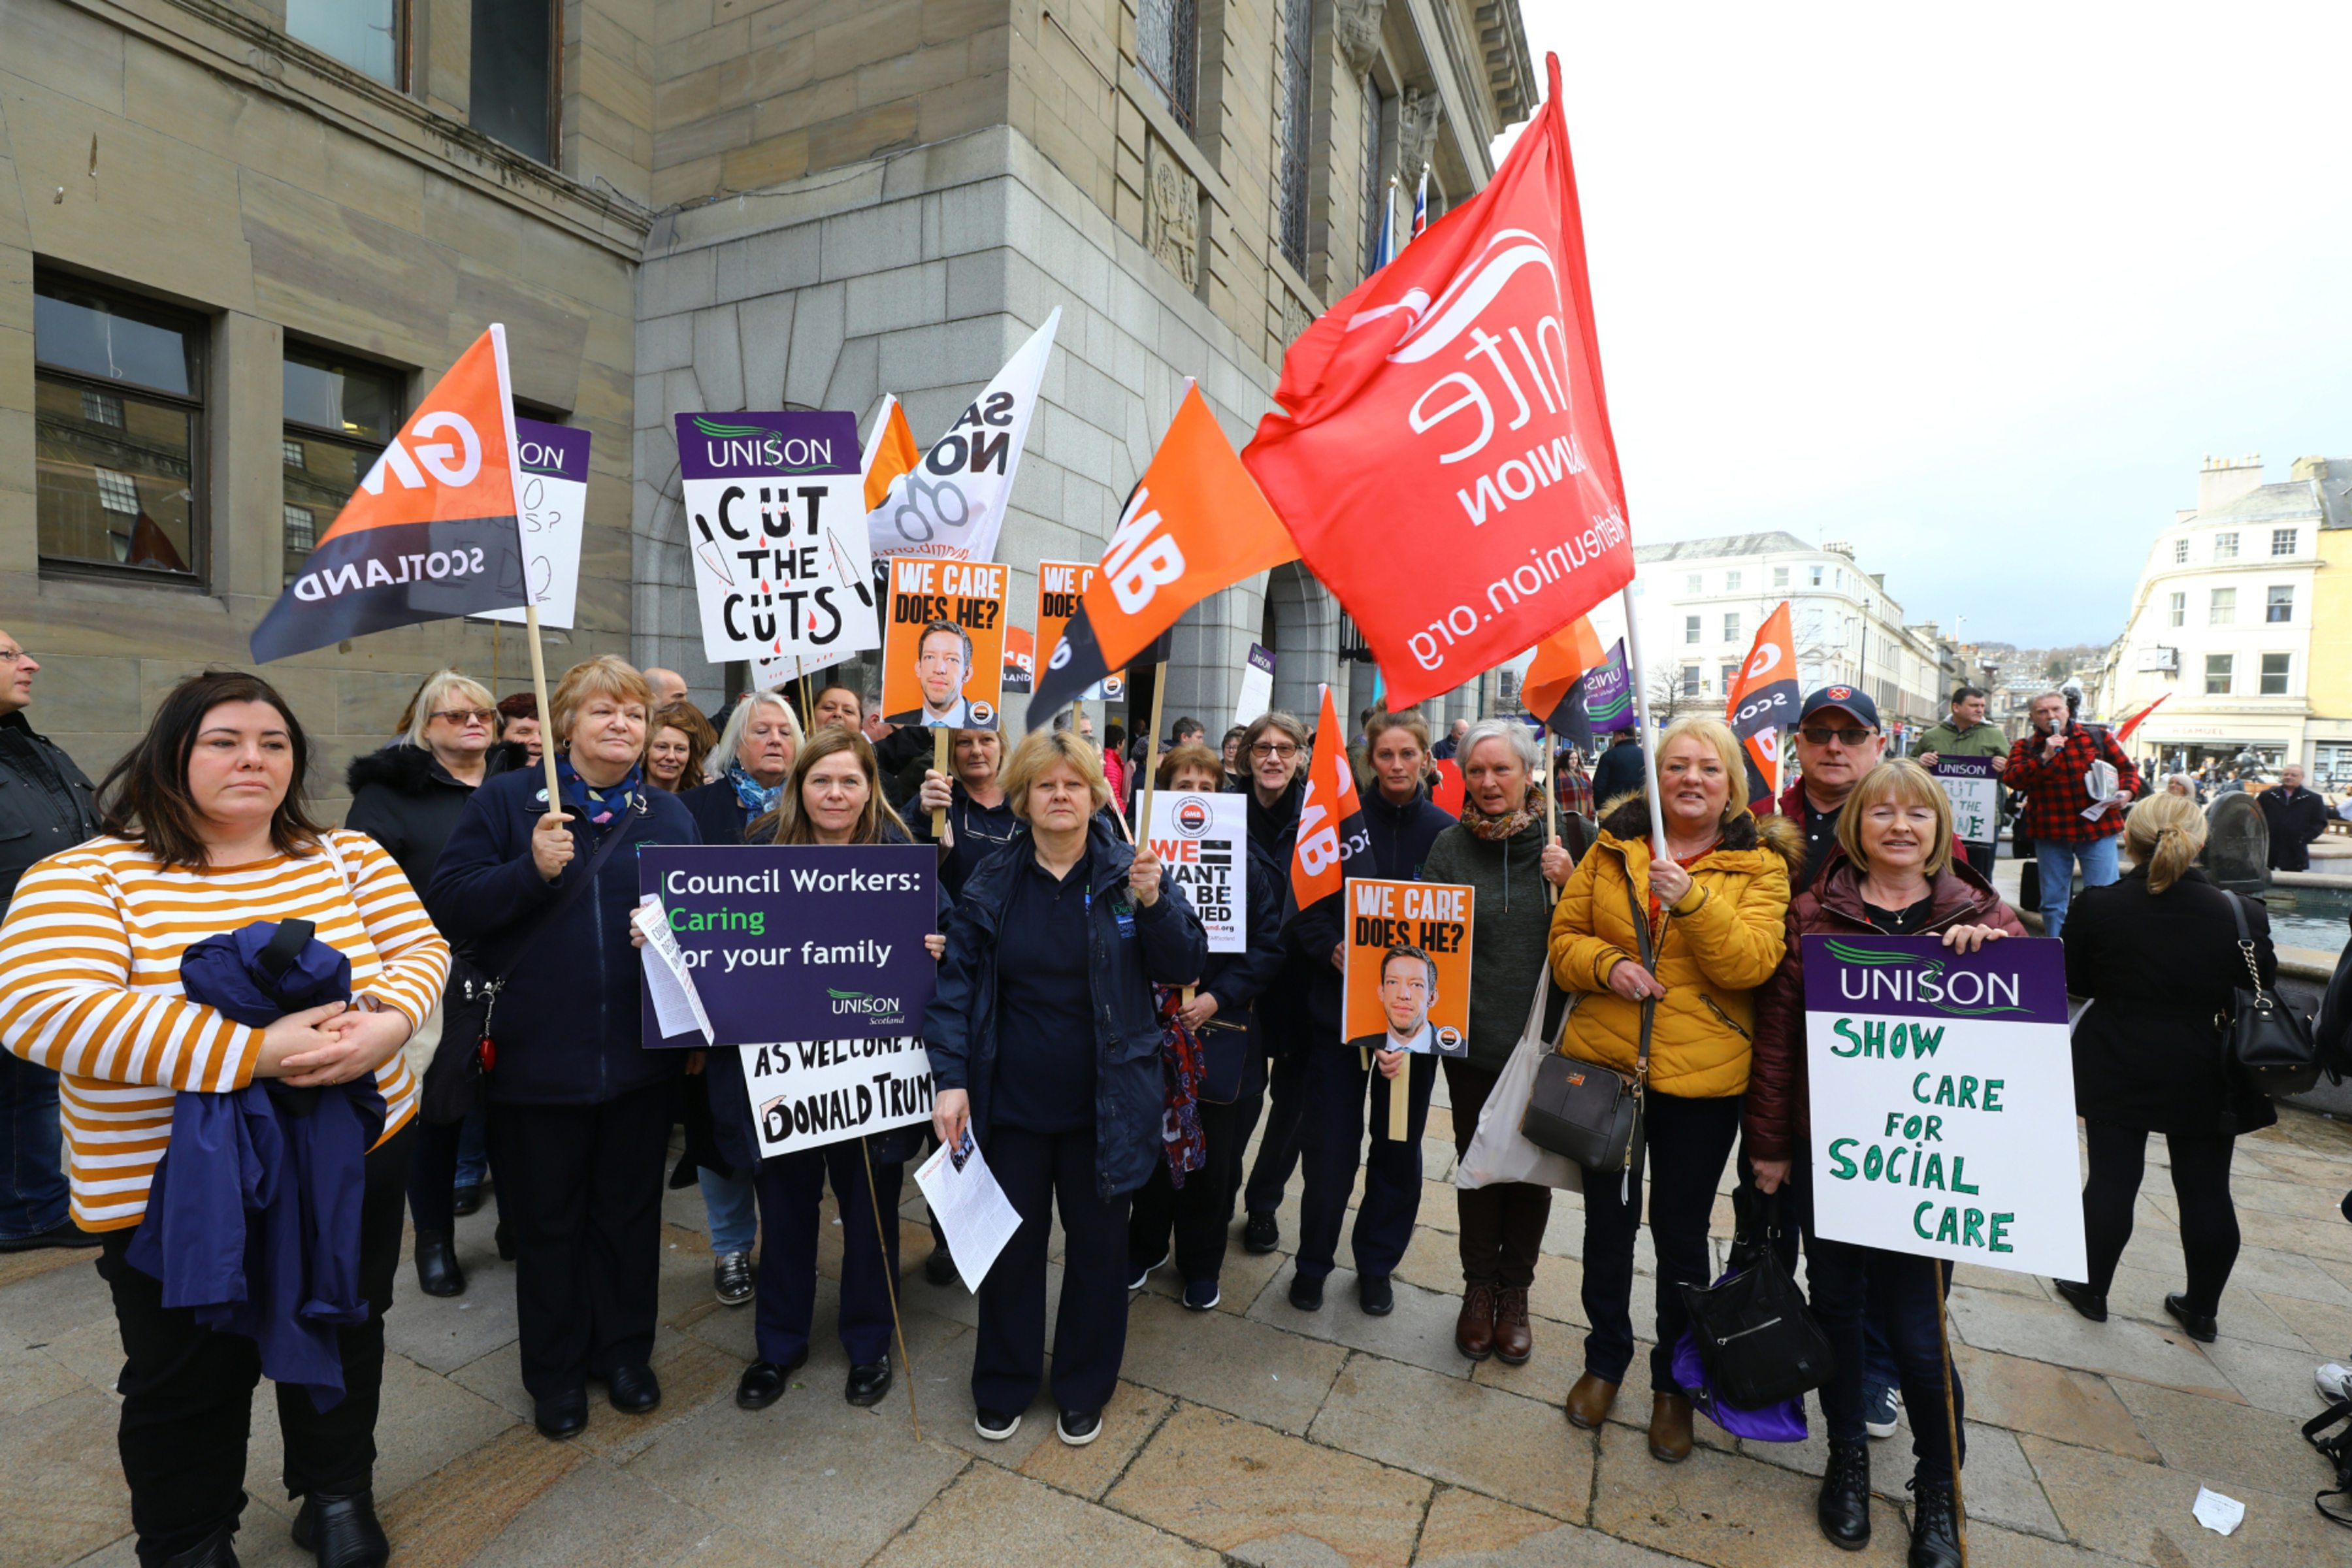 Union members demonstrating at City Square earlier in the year.